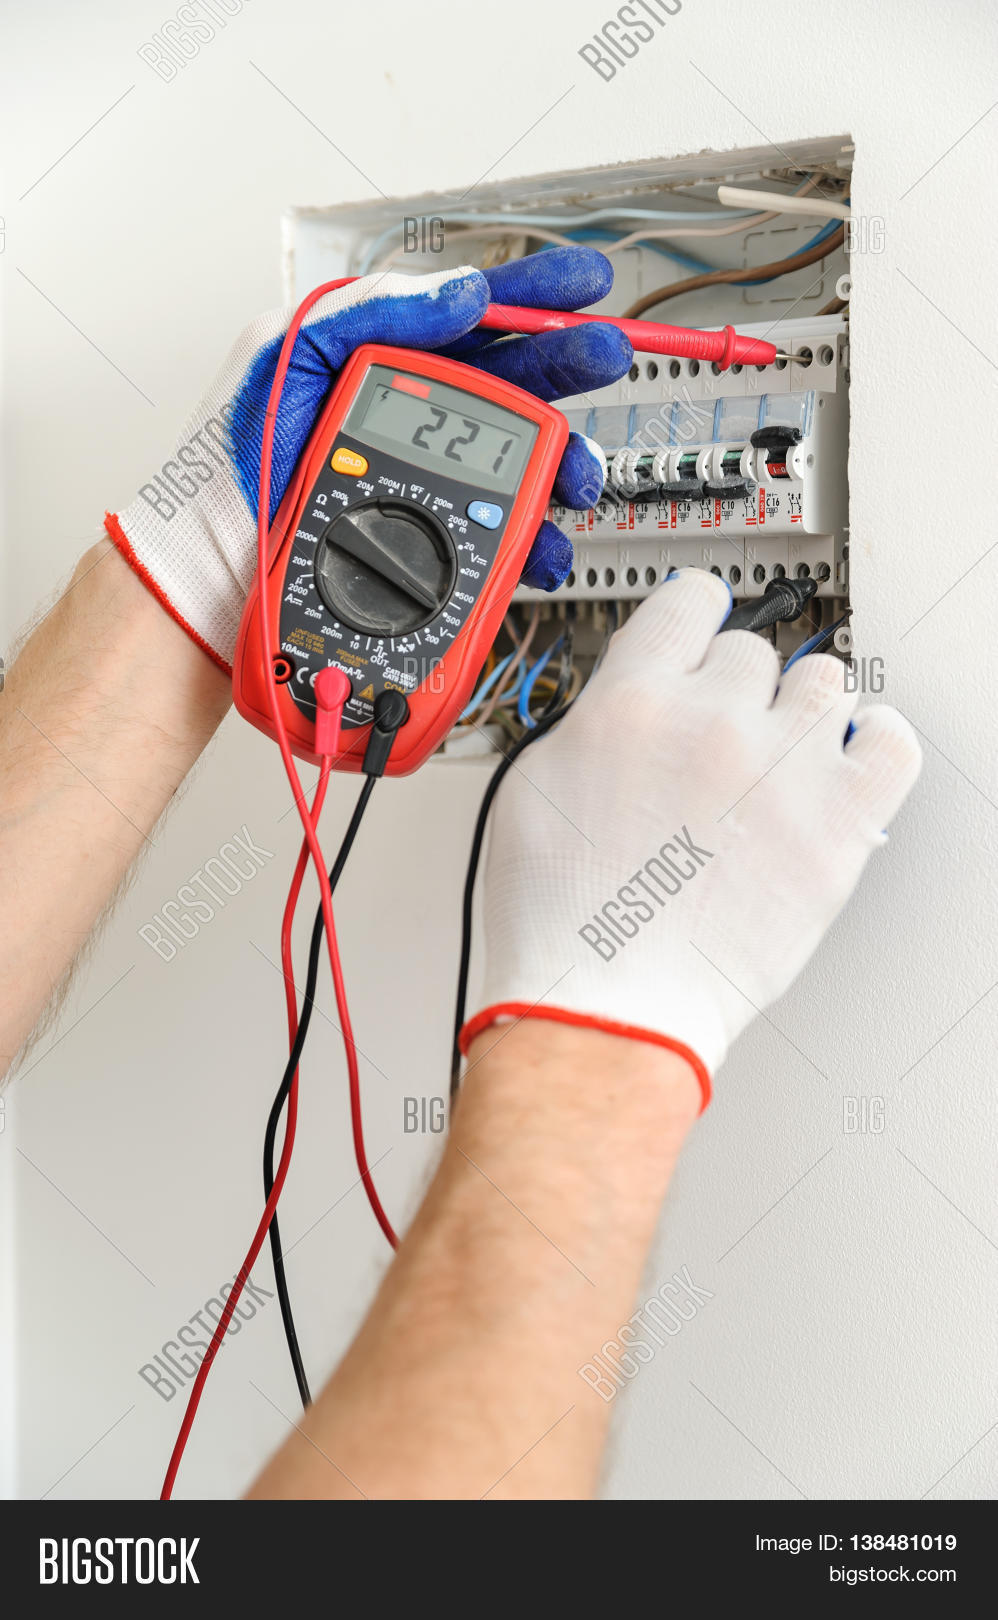 138481019 how to check fuse box with multimeter efcaviation com how to check fuse box with multimeter at gsmx.co